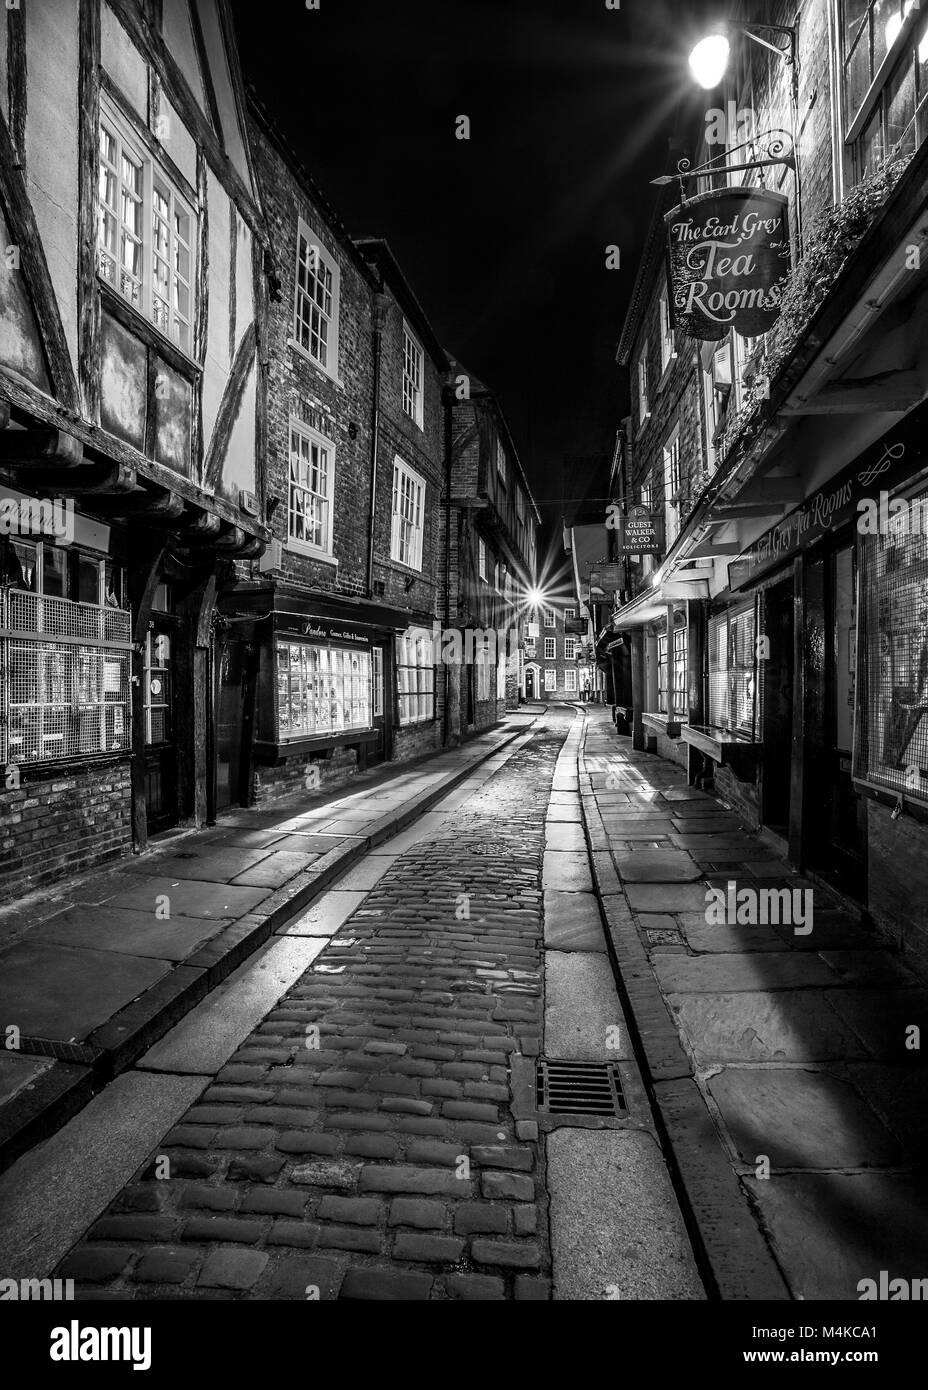 The Shambles in the ancient city of York, England - Stock Image